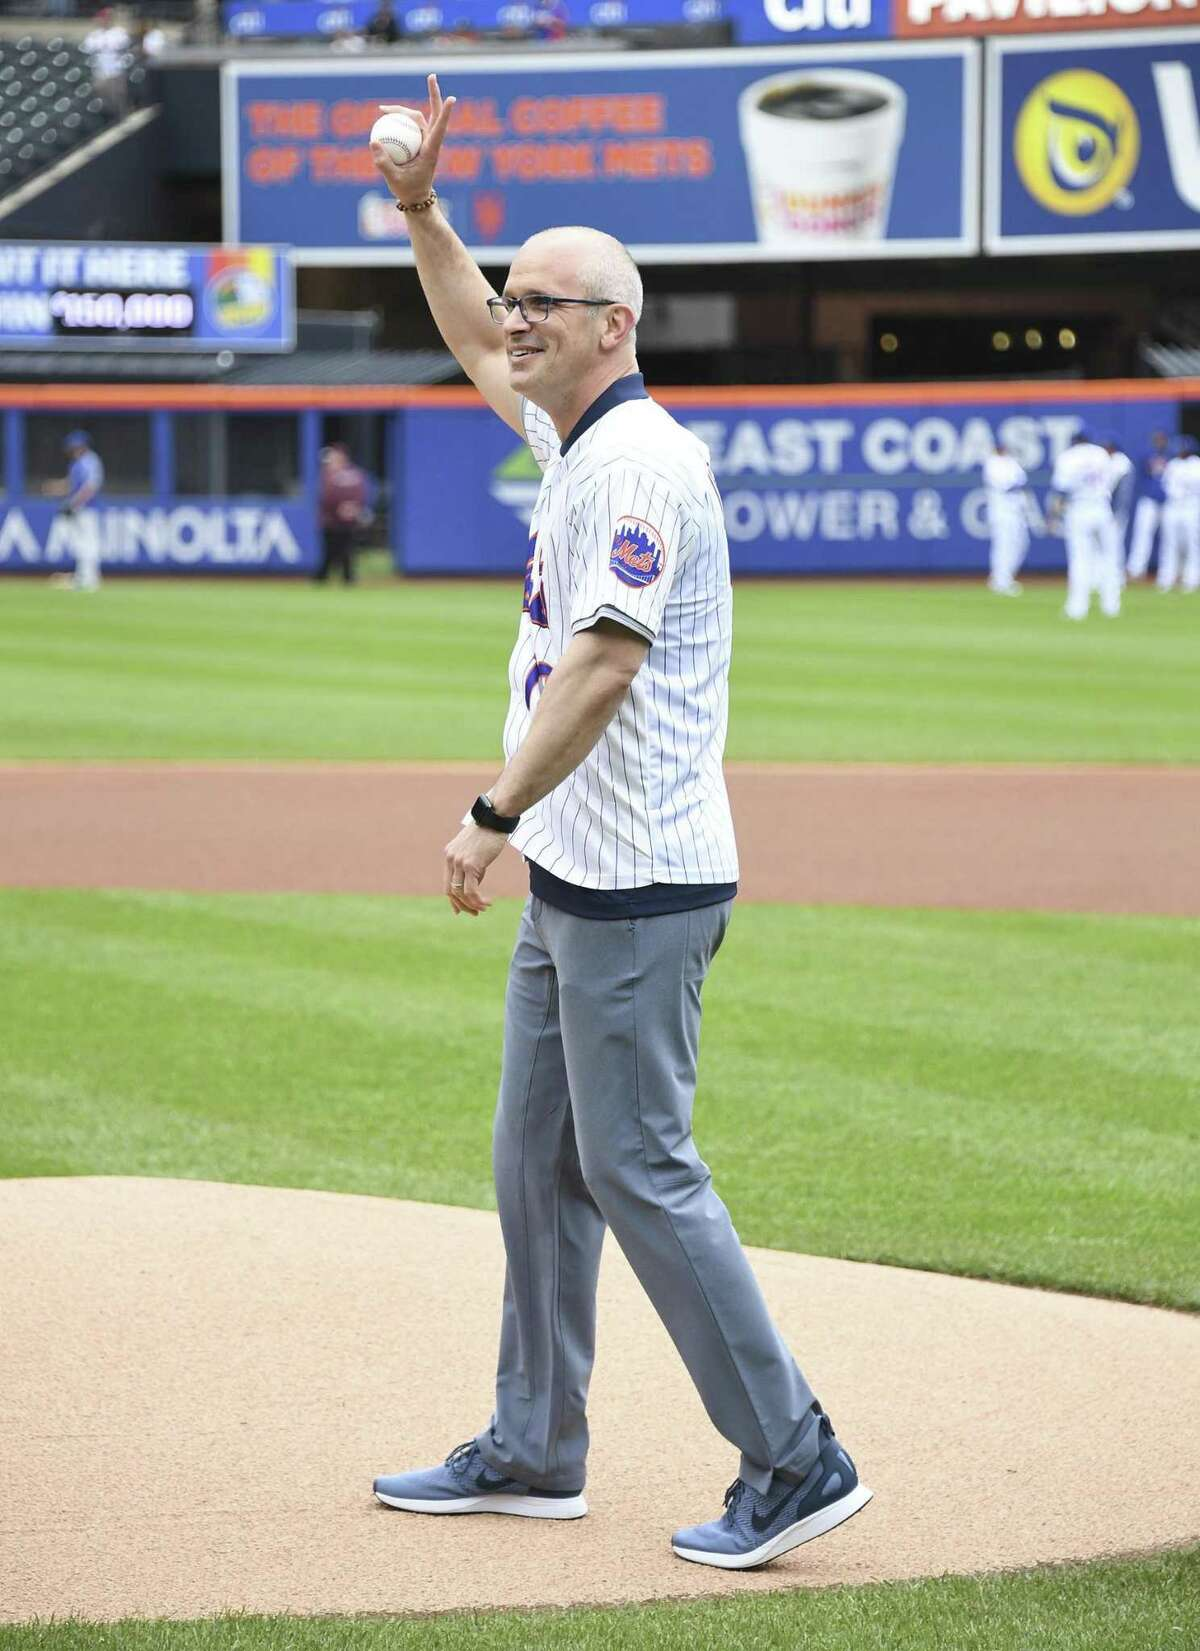 UConn men's basketball coach Dan Hurley gets ready to throw out the ceremonial first pitch before Sunday's game between the Cubs and Mets in New York.